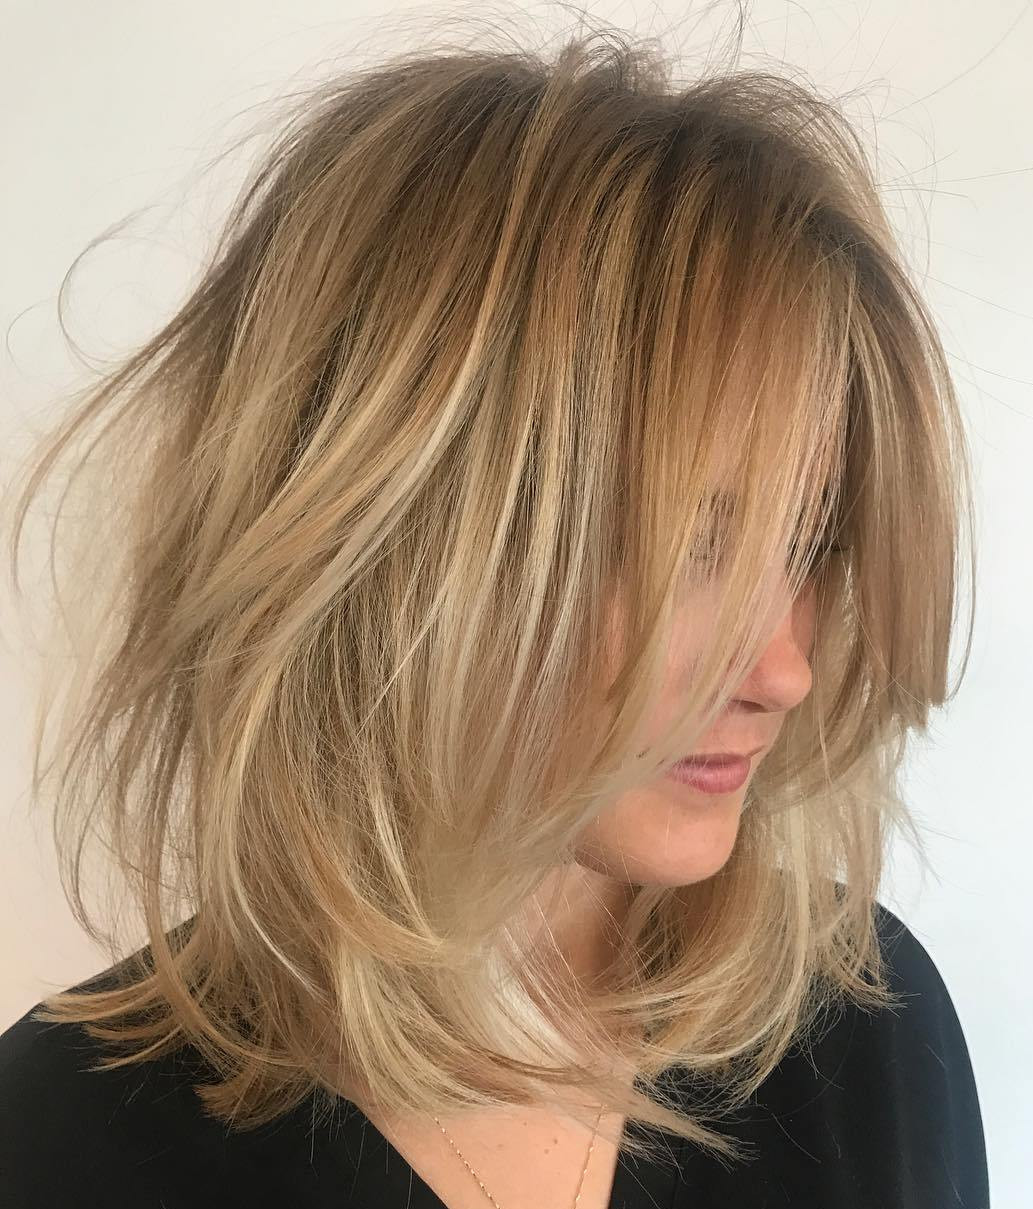 Best ideas about Hairstyles For Very Thin Hair . Save or Pin 70 Devastatingly Cool Haircuts for Thin Hair Now.